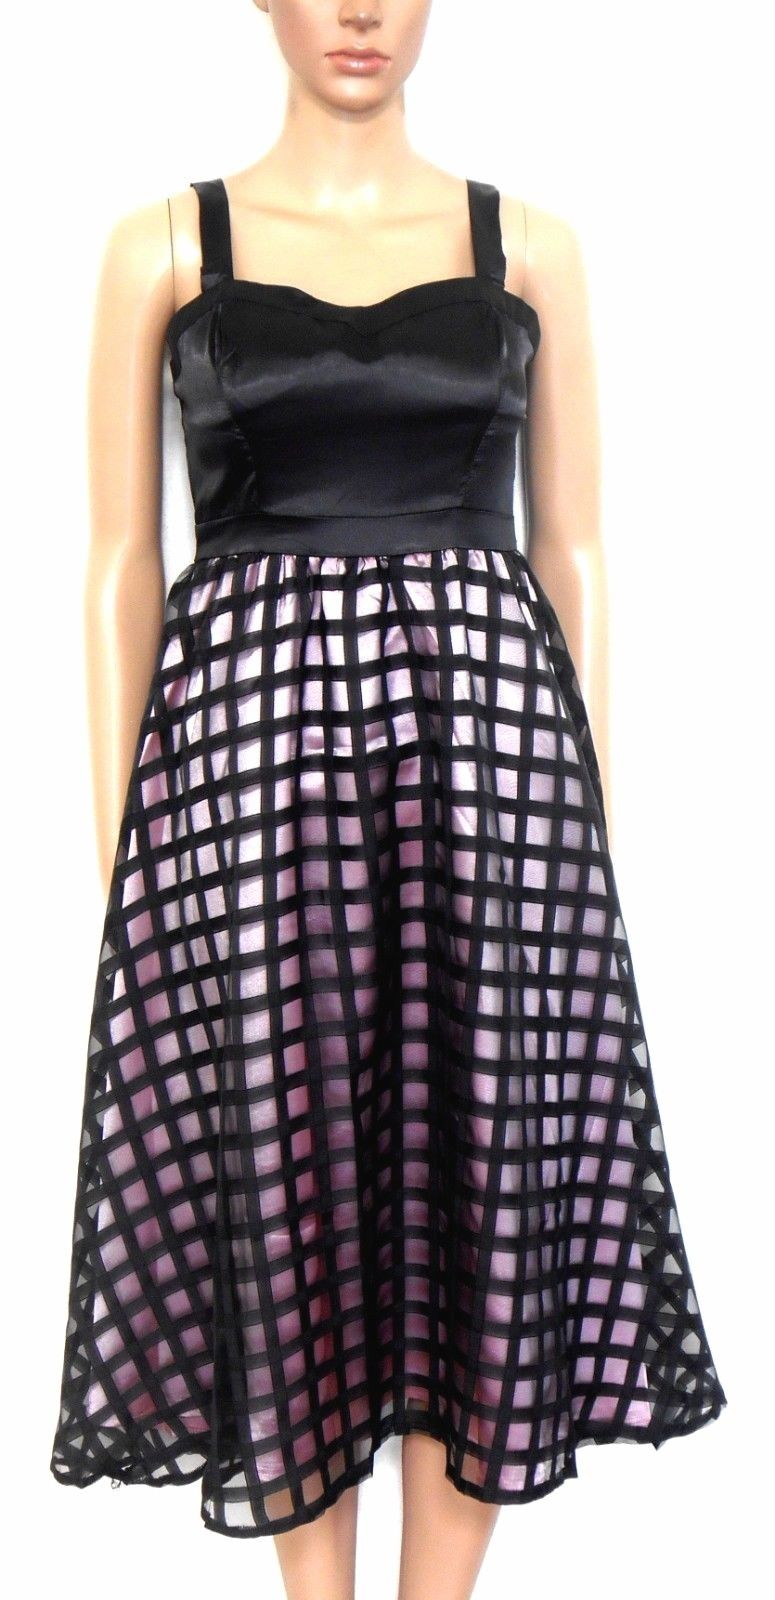 Saba  dress, spectacular design and style, black/pink shell lined, sz. 12, near new